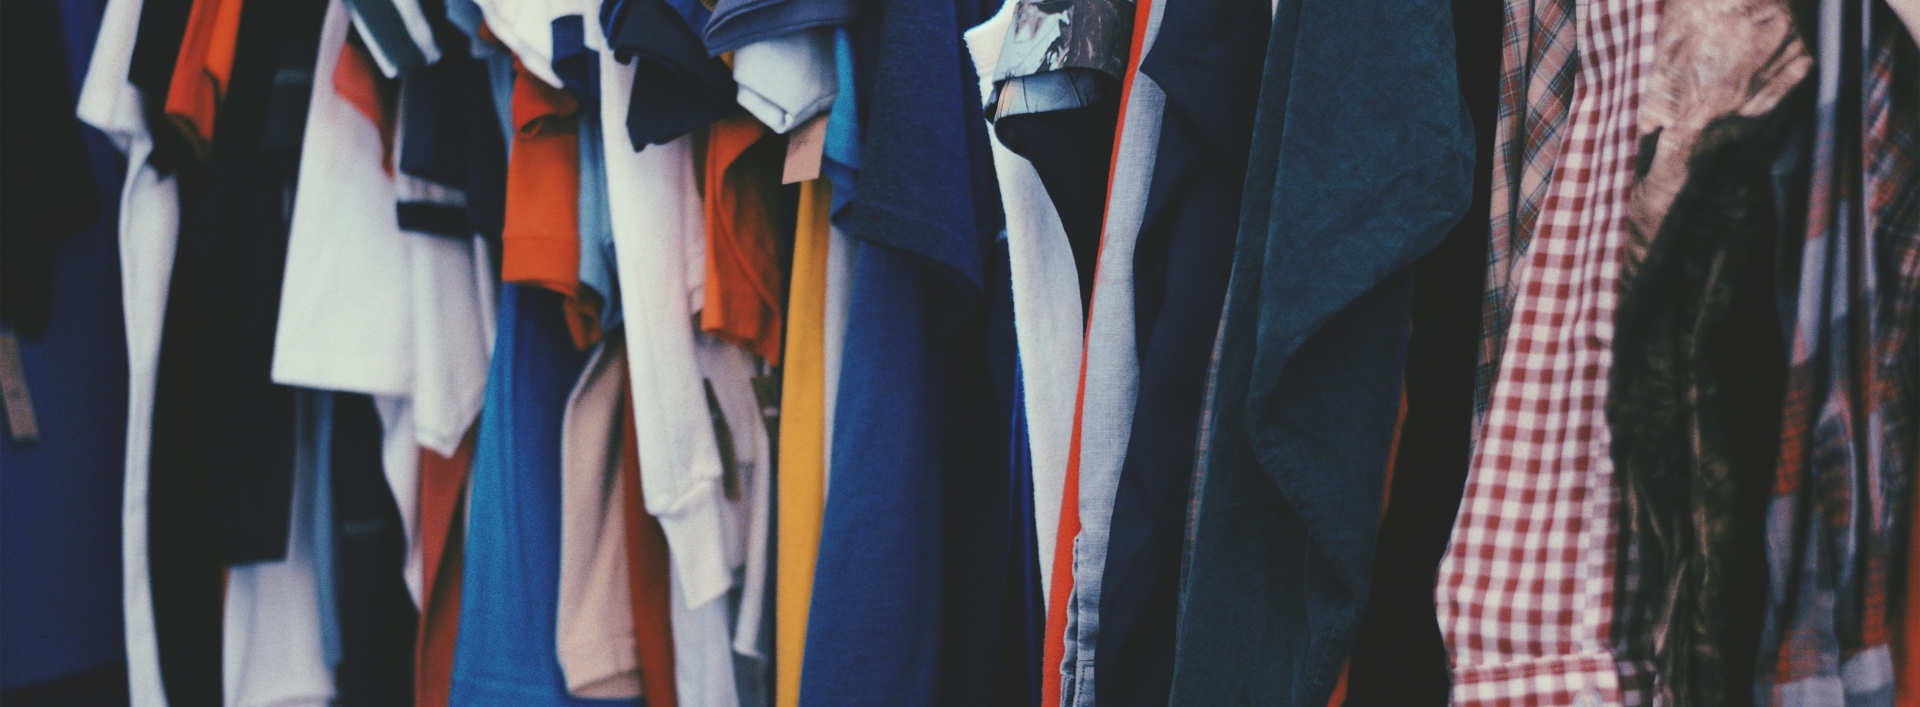 Colorful clothing hanging in a closet